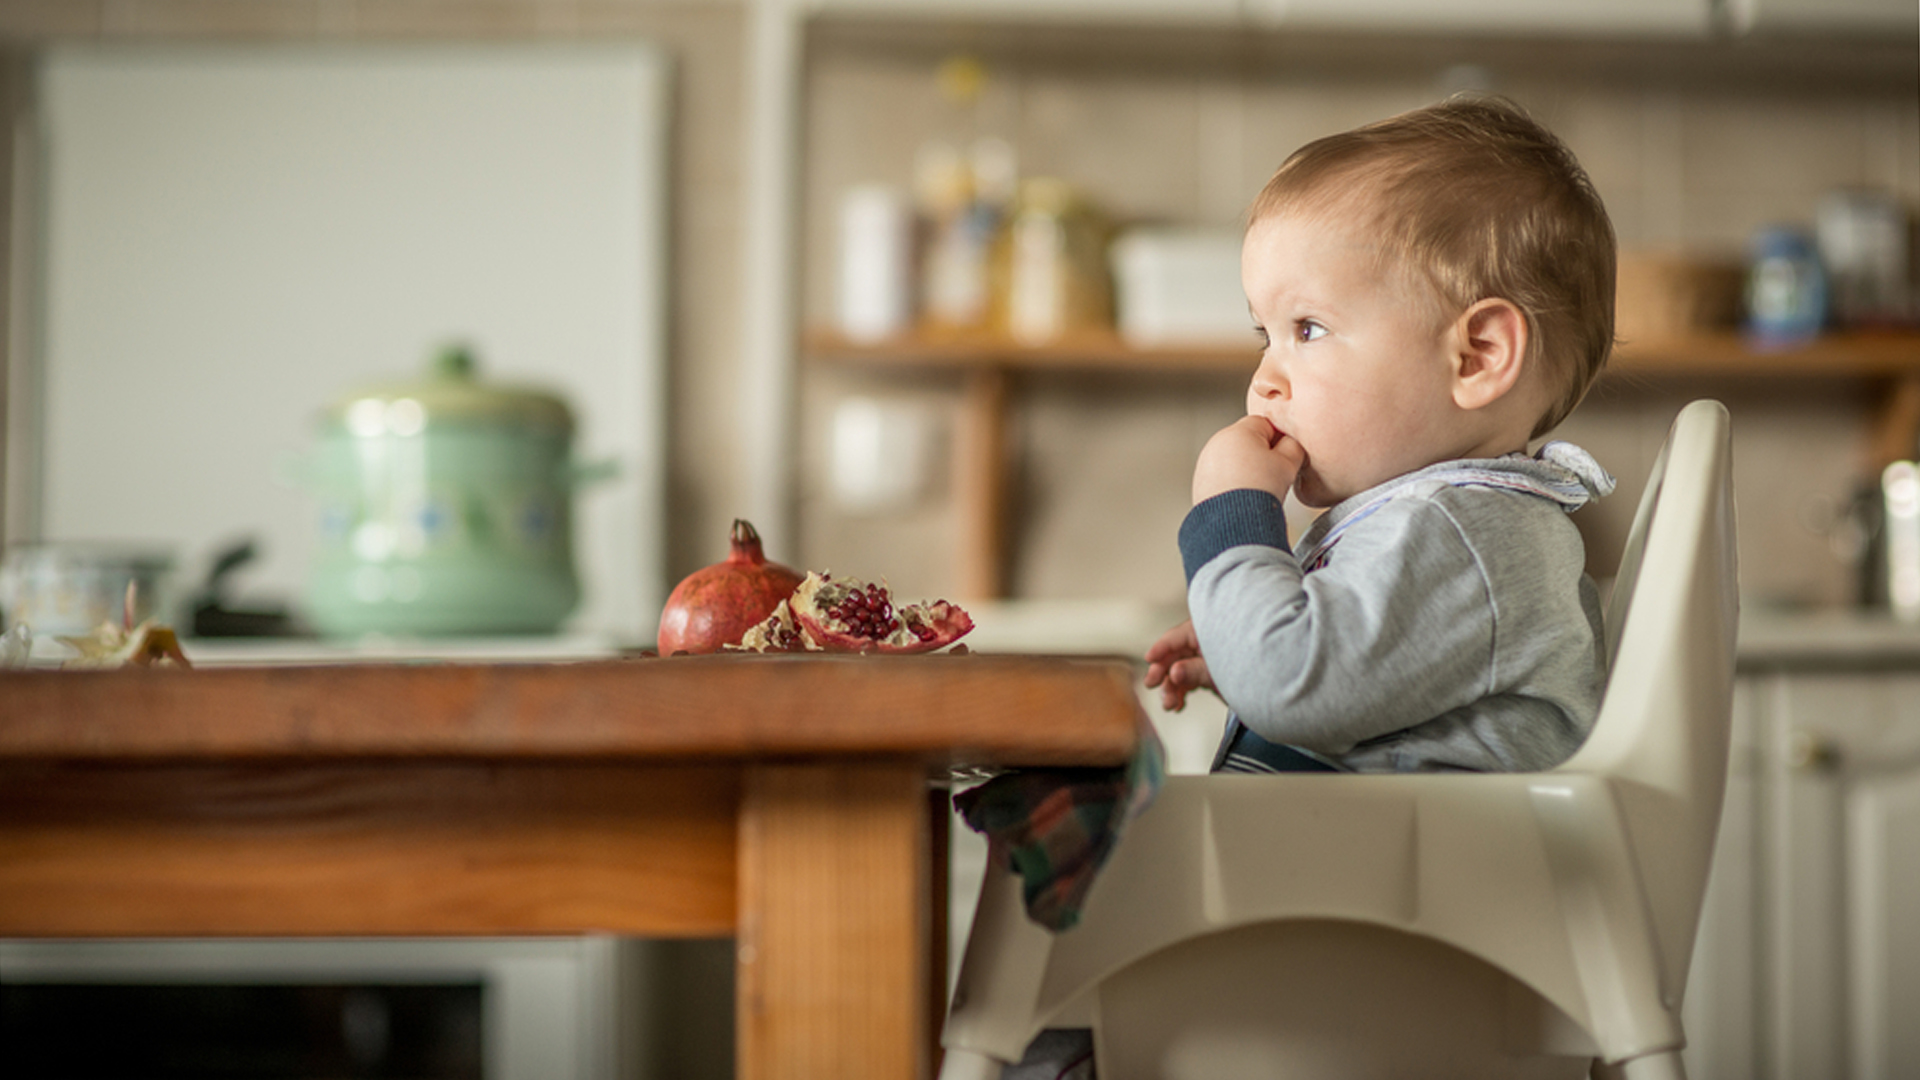 baby chairs for eating pub table and chair sets dad warns parents of infant choking hazard with snack food